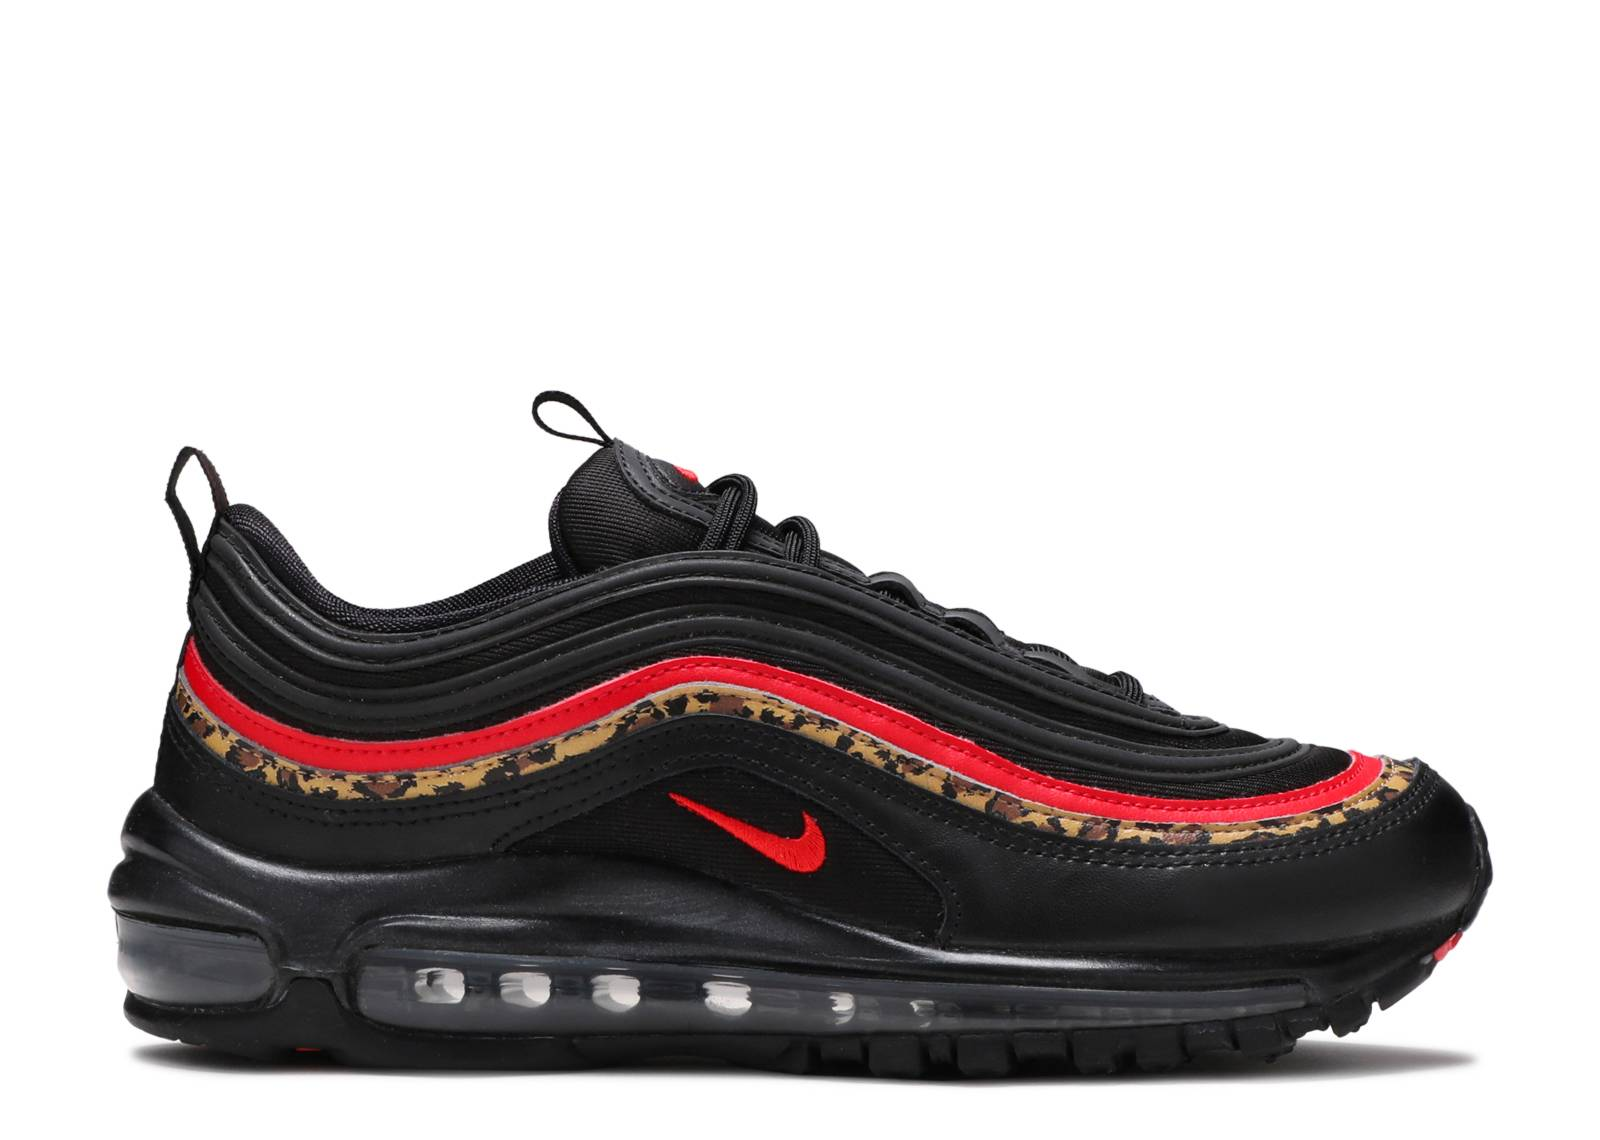 Nike Air Max 97 Men's & Women's Shoes | Flight Club